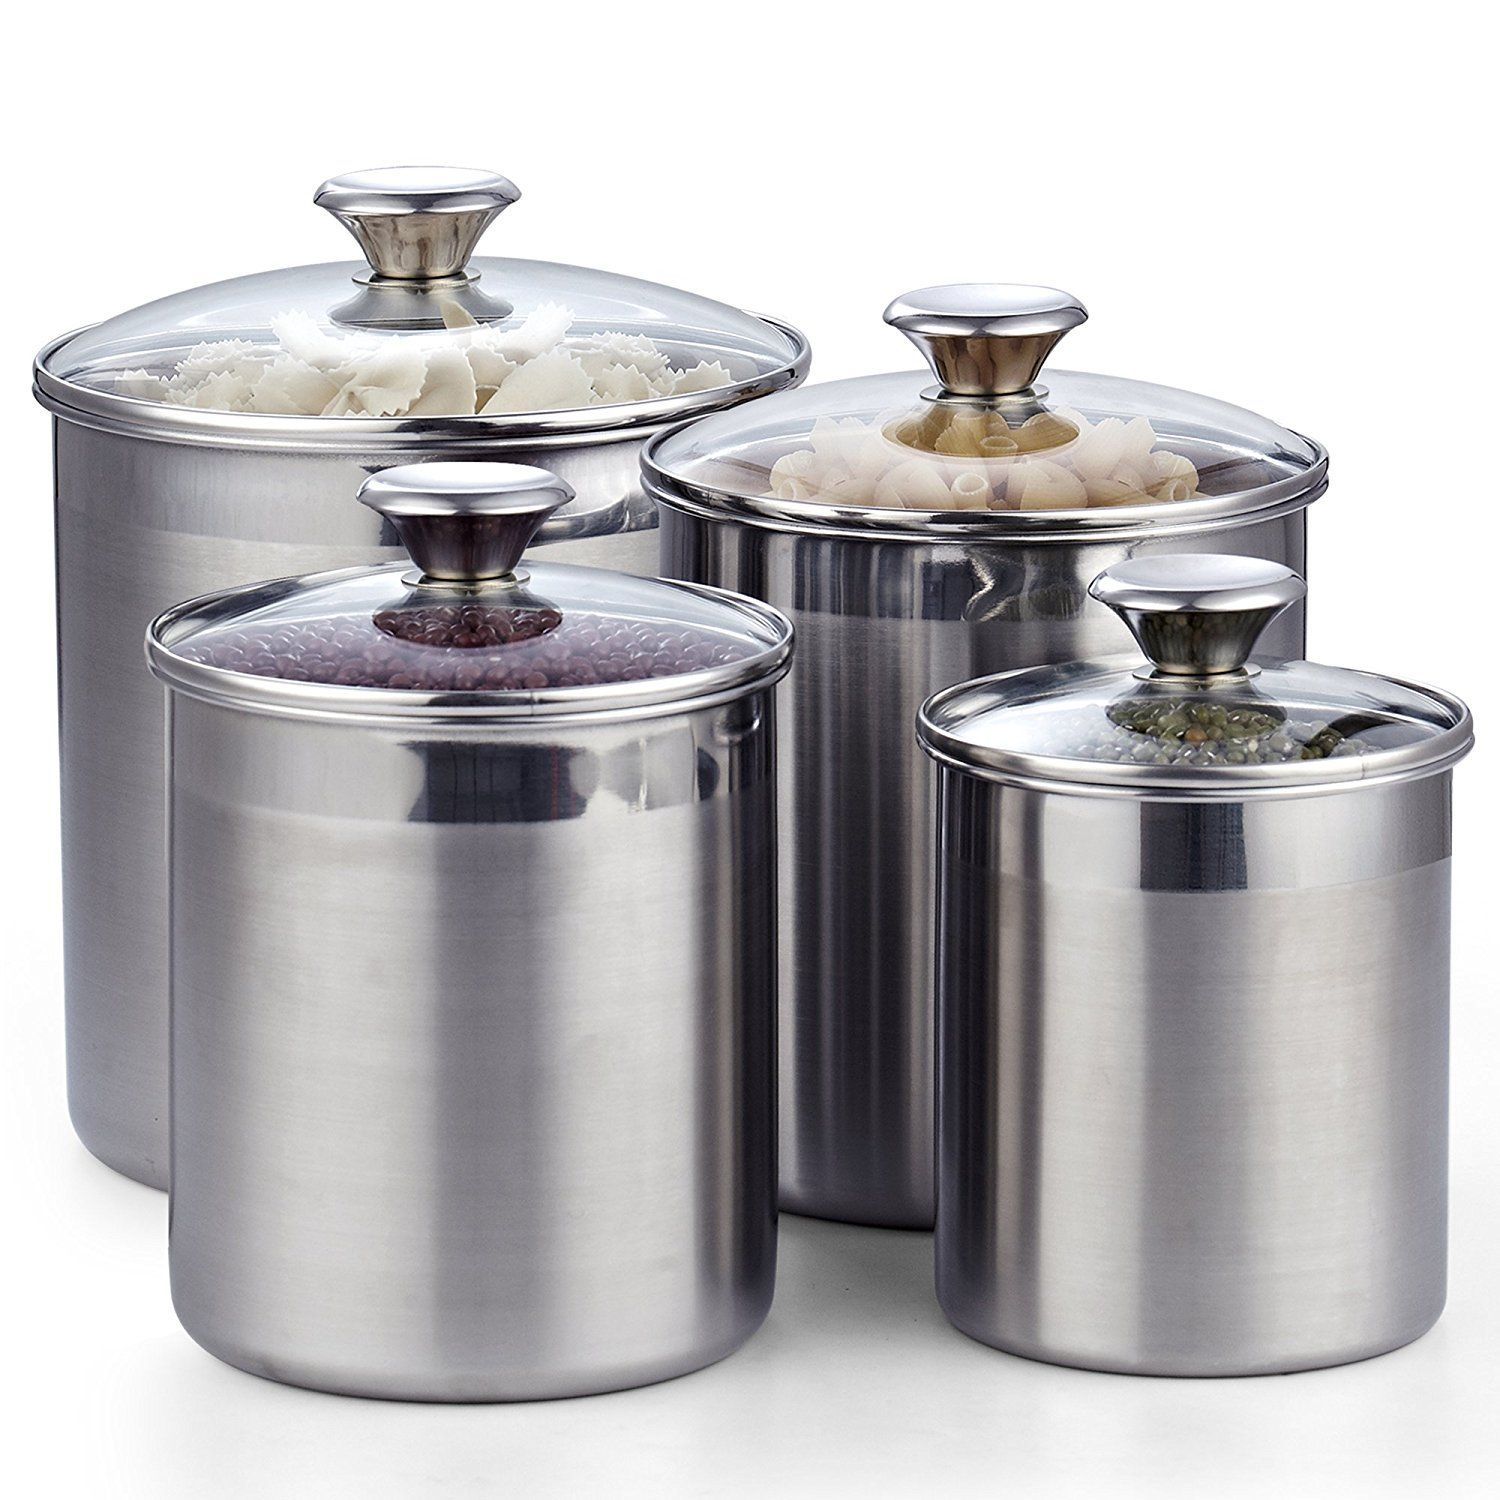 Cooks Standard 4 Piece Stainless Steel Canister Set Walmart Com In 2021 Stainless Steel Canister Set Stainless Steel Canisters Canister Sets Stainless steel kitchen canister sets